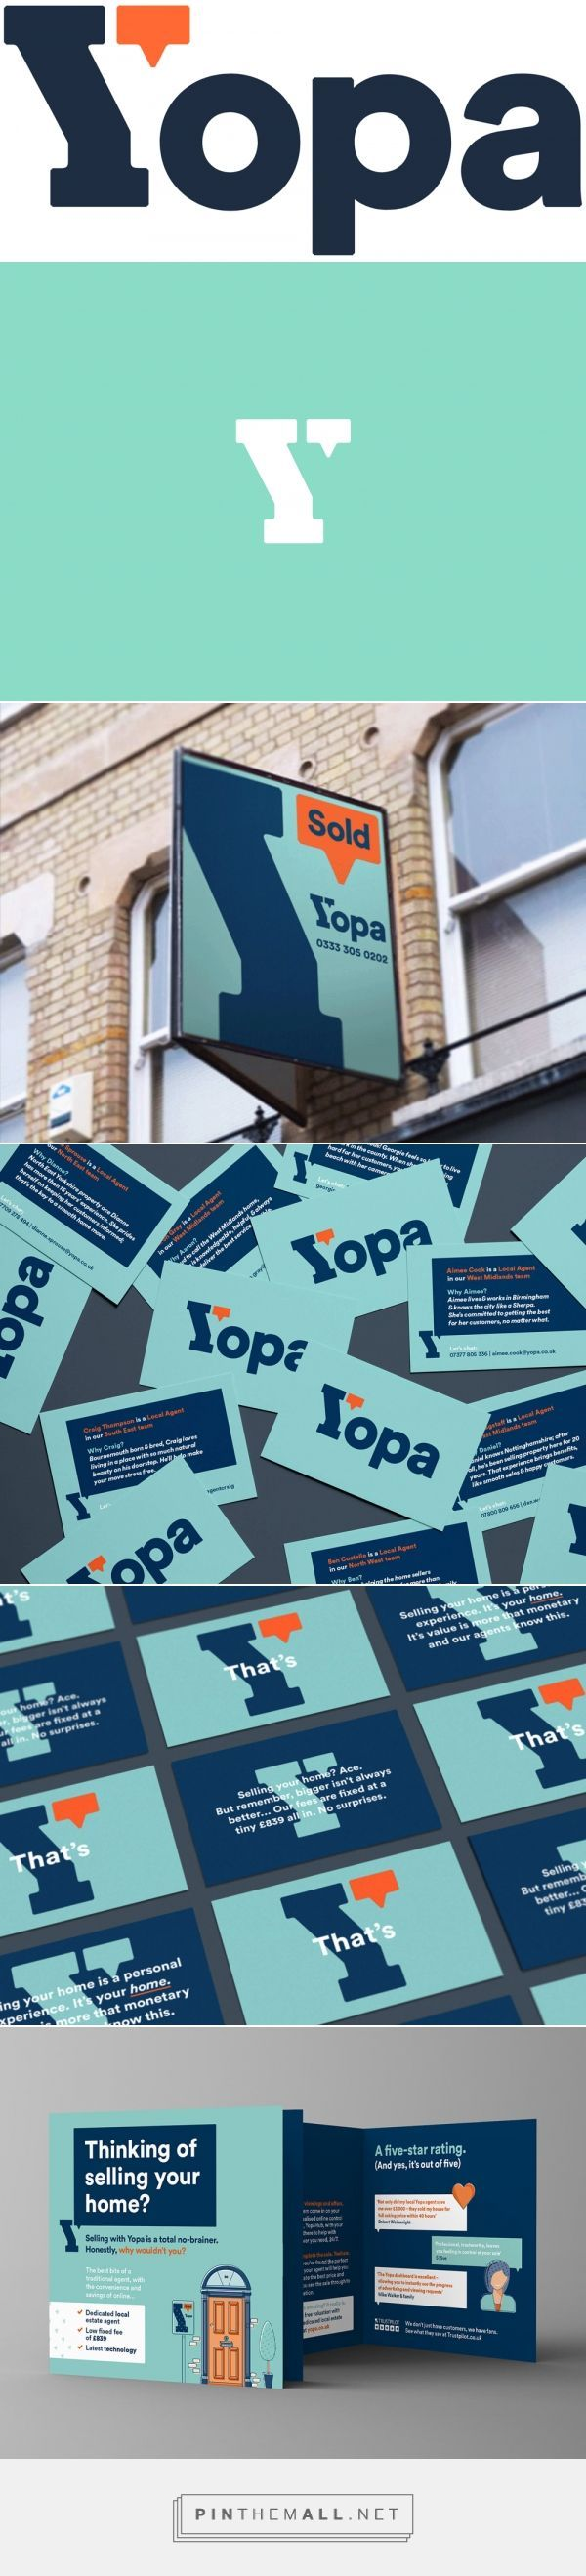 Brand New: New Logo and Identity for Yopa by SomeOne - created via https://pinthemall.net